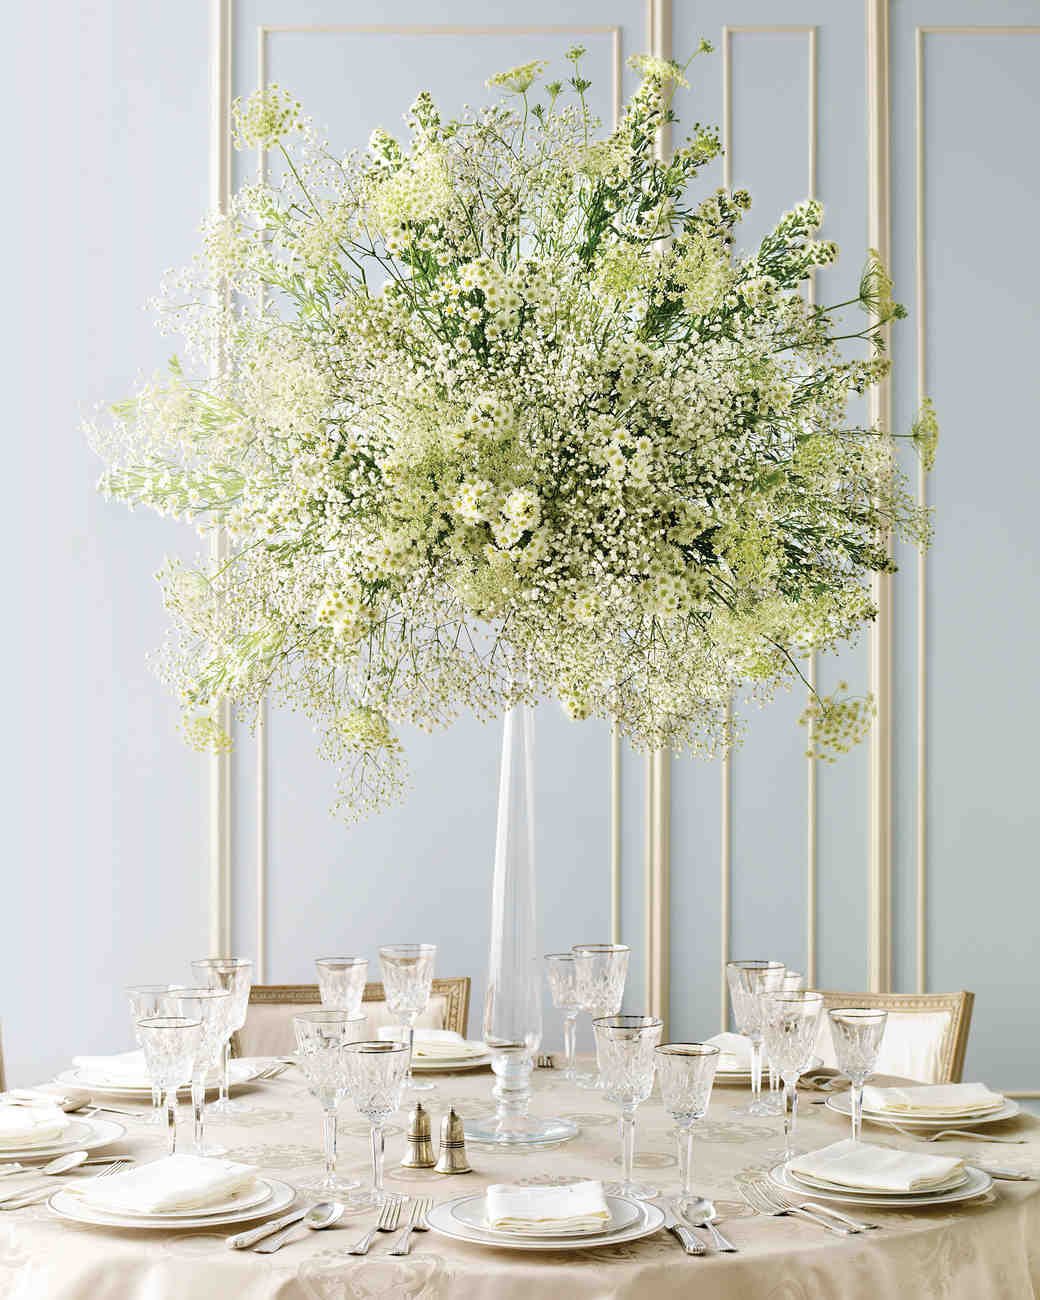 Wedding Tables Ideas: Elegant And Inexpensive Wedding Flower Ideas